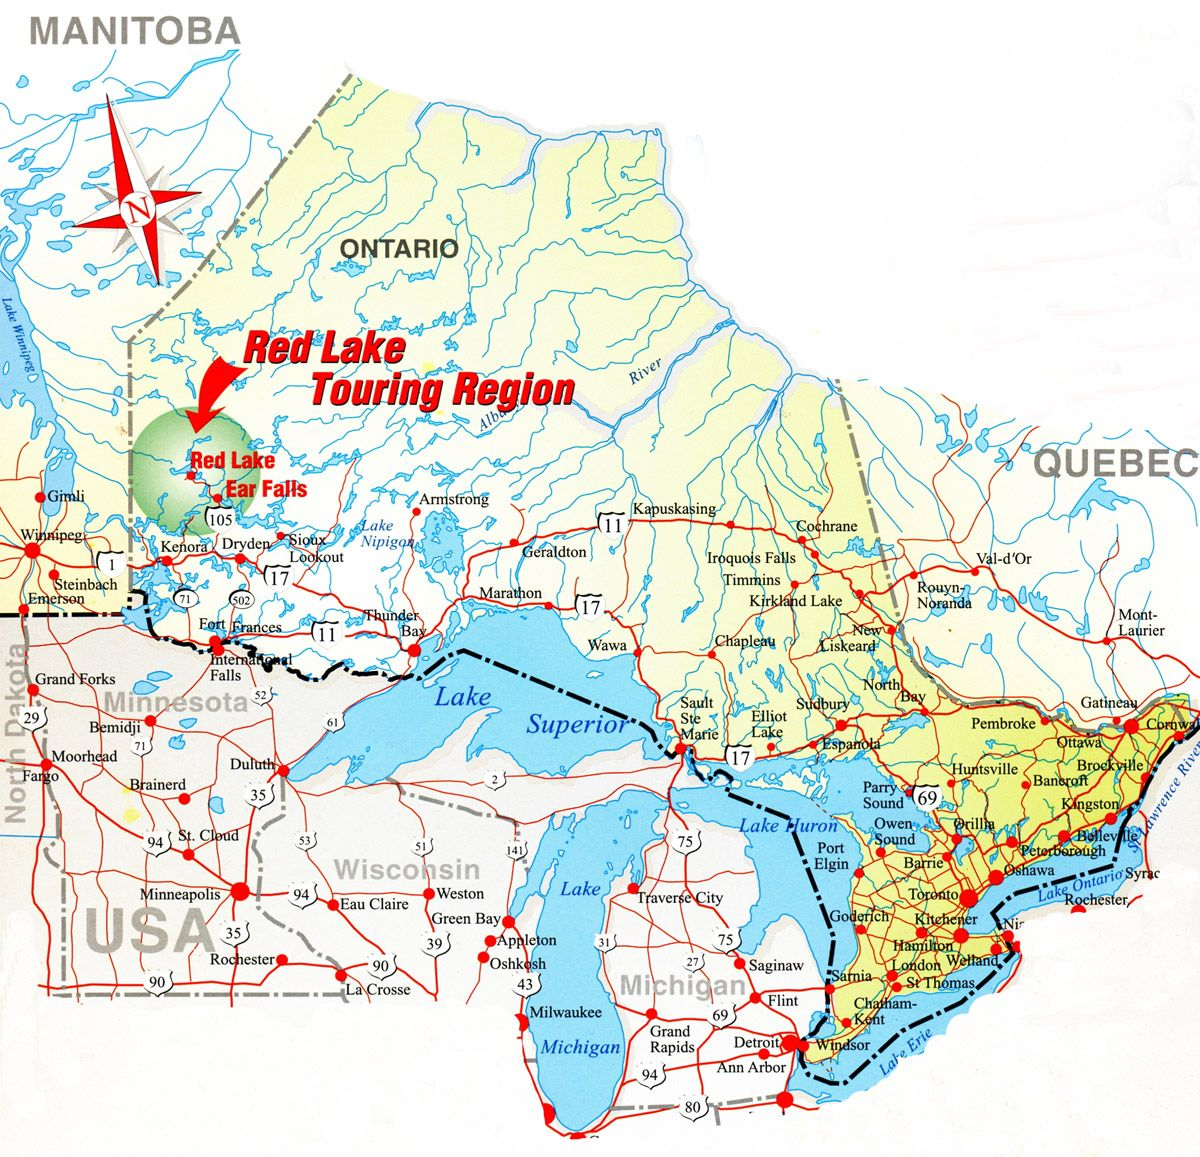 Map Of Canada Highway 1 Le Canada Carte | Canada map, Canadian travel, Timmins